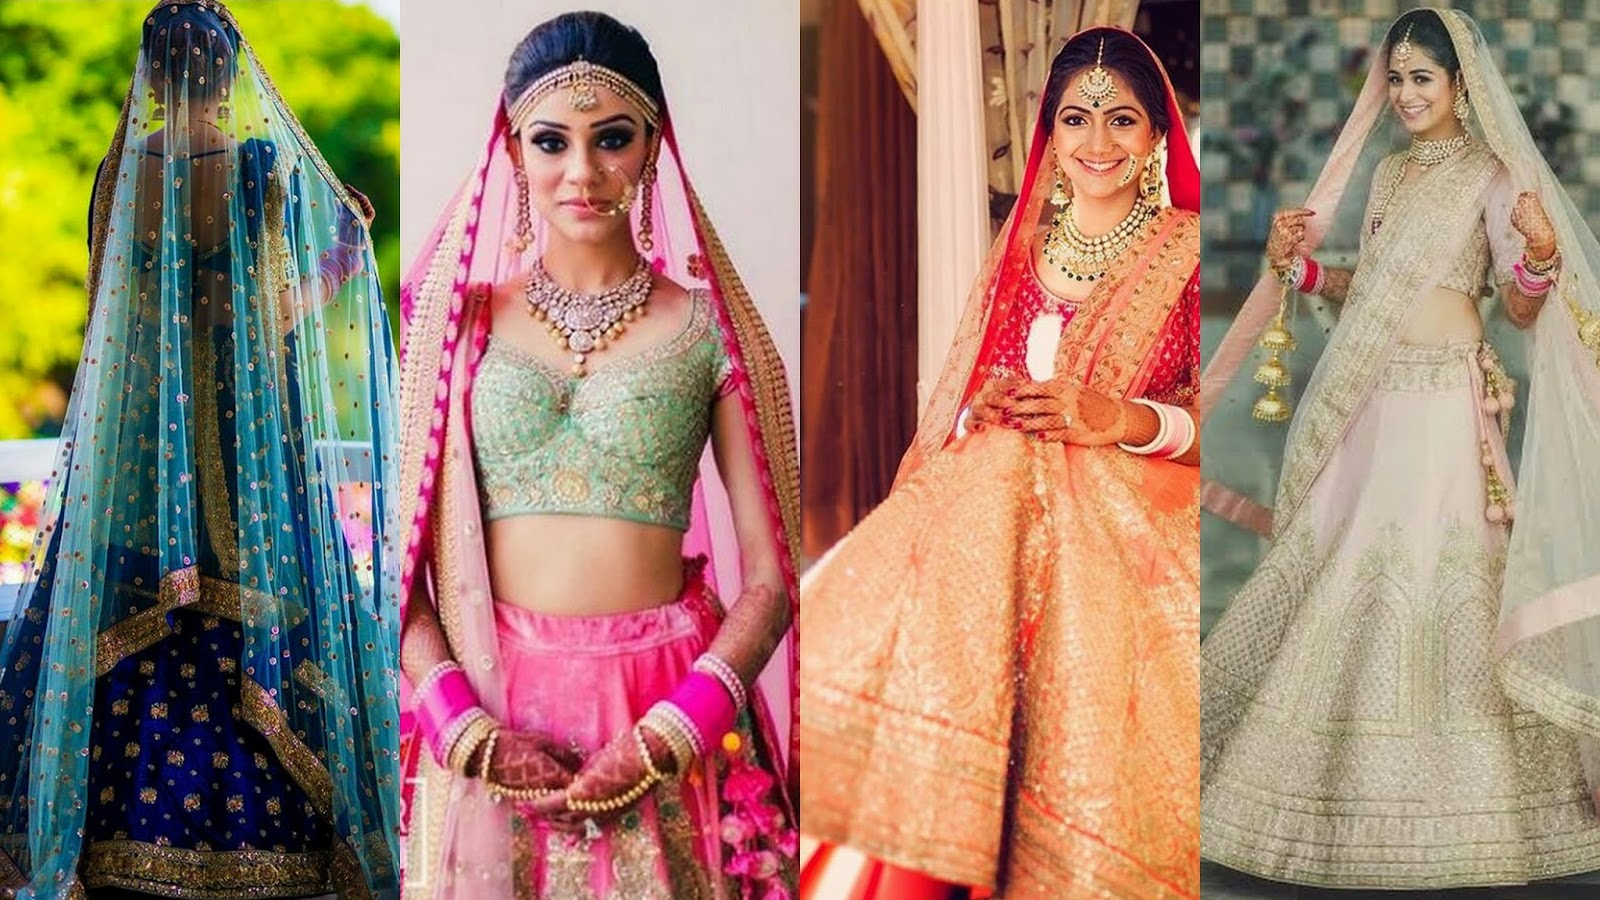 Bride,Indian tradition,LEHENGA,Bridal lehenga,golden lehenga,bridal jewellery,designer lehenga,blue lehenga,pink lehenga,double duppatta,off the beat lehenga,orange lehenga,summer bride,winter bride